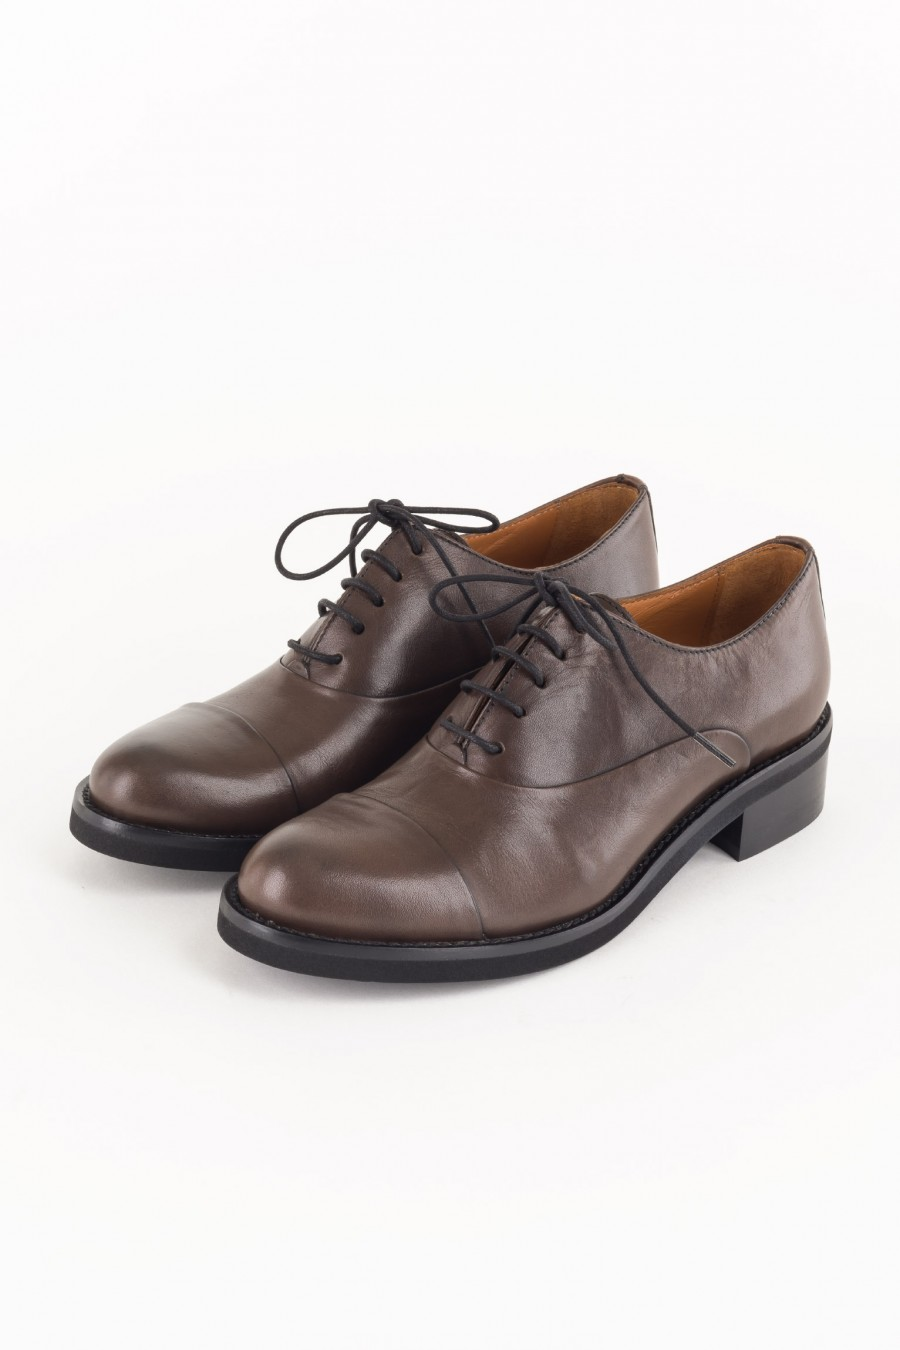 Lace-up brown derby shoes